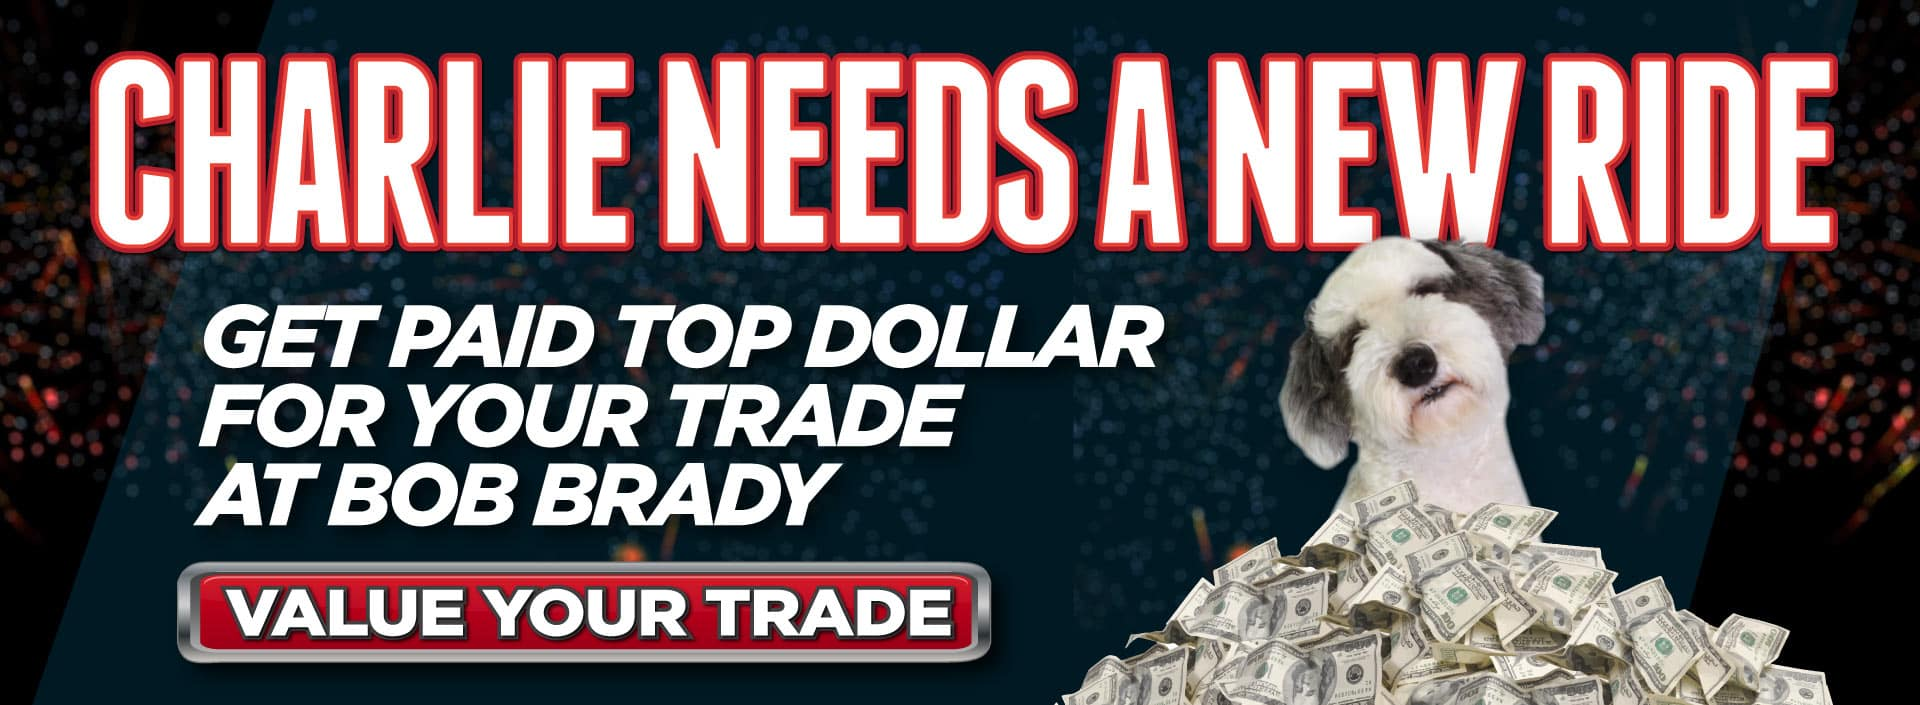 Get paid top dollar for your trade at Bob Brady. Value Your Trade Here.